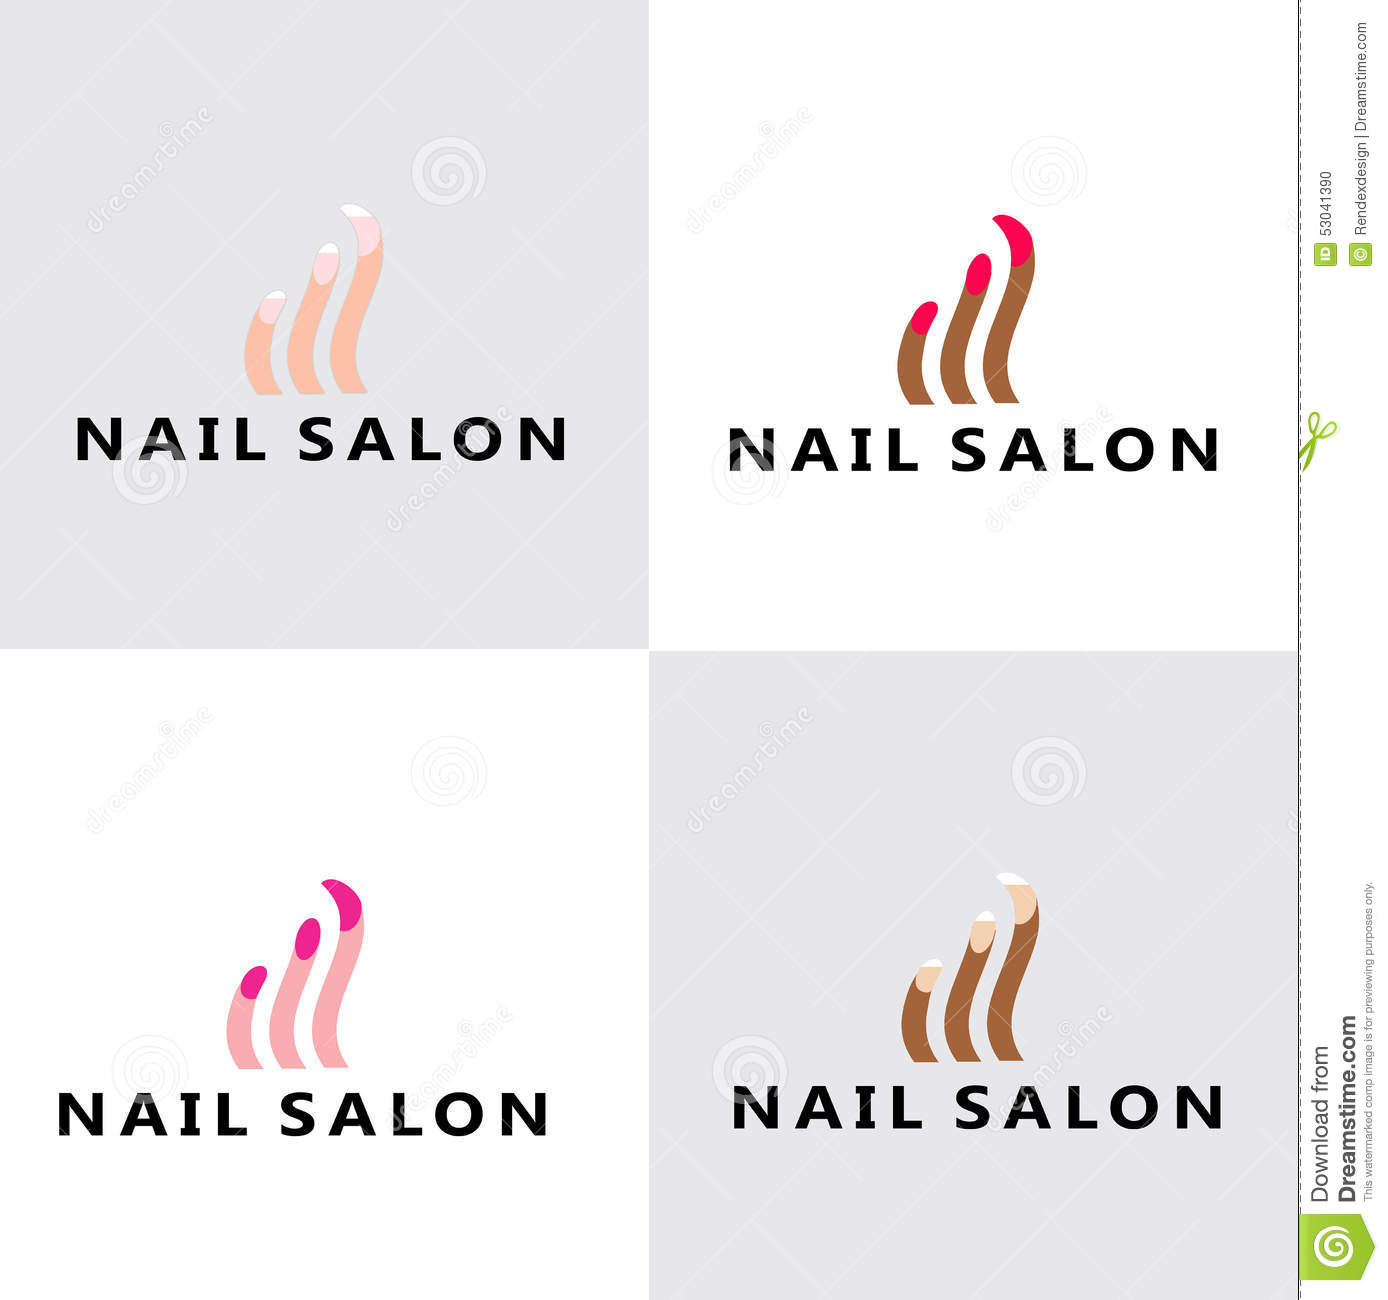 nail logo design joy studio design gallery best design